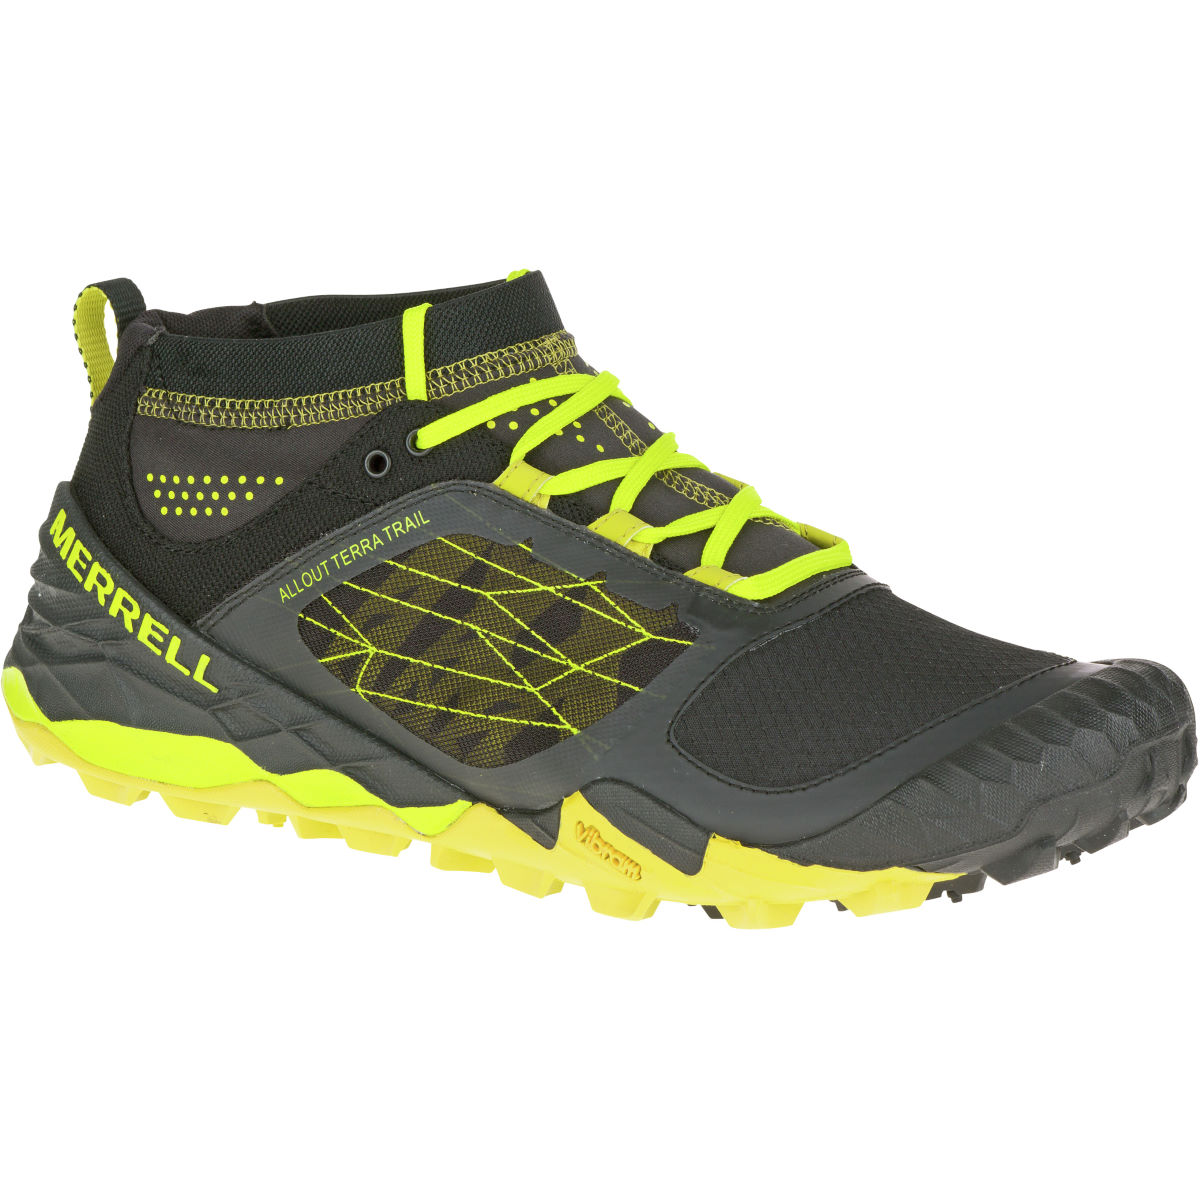 Merrell All Out Terra Trail Shoes (SS16)